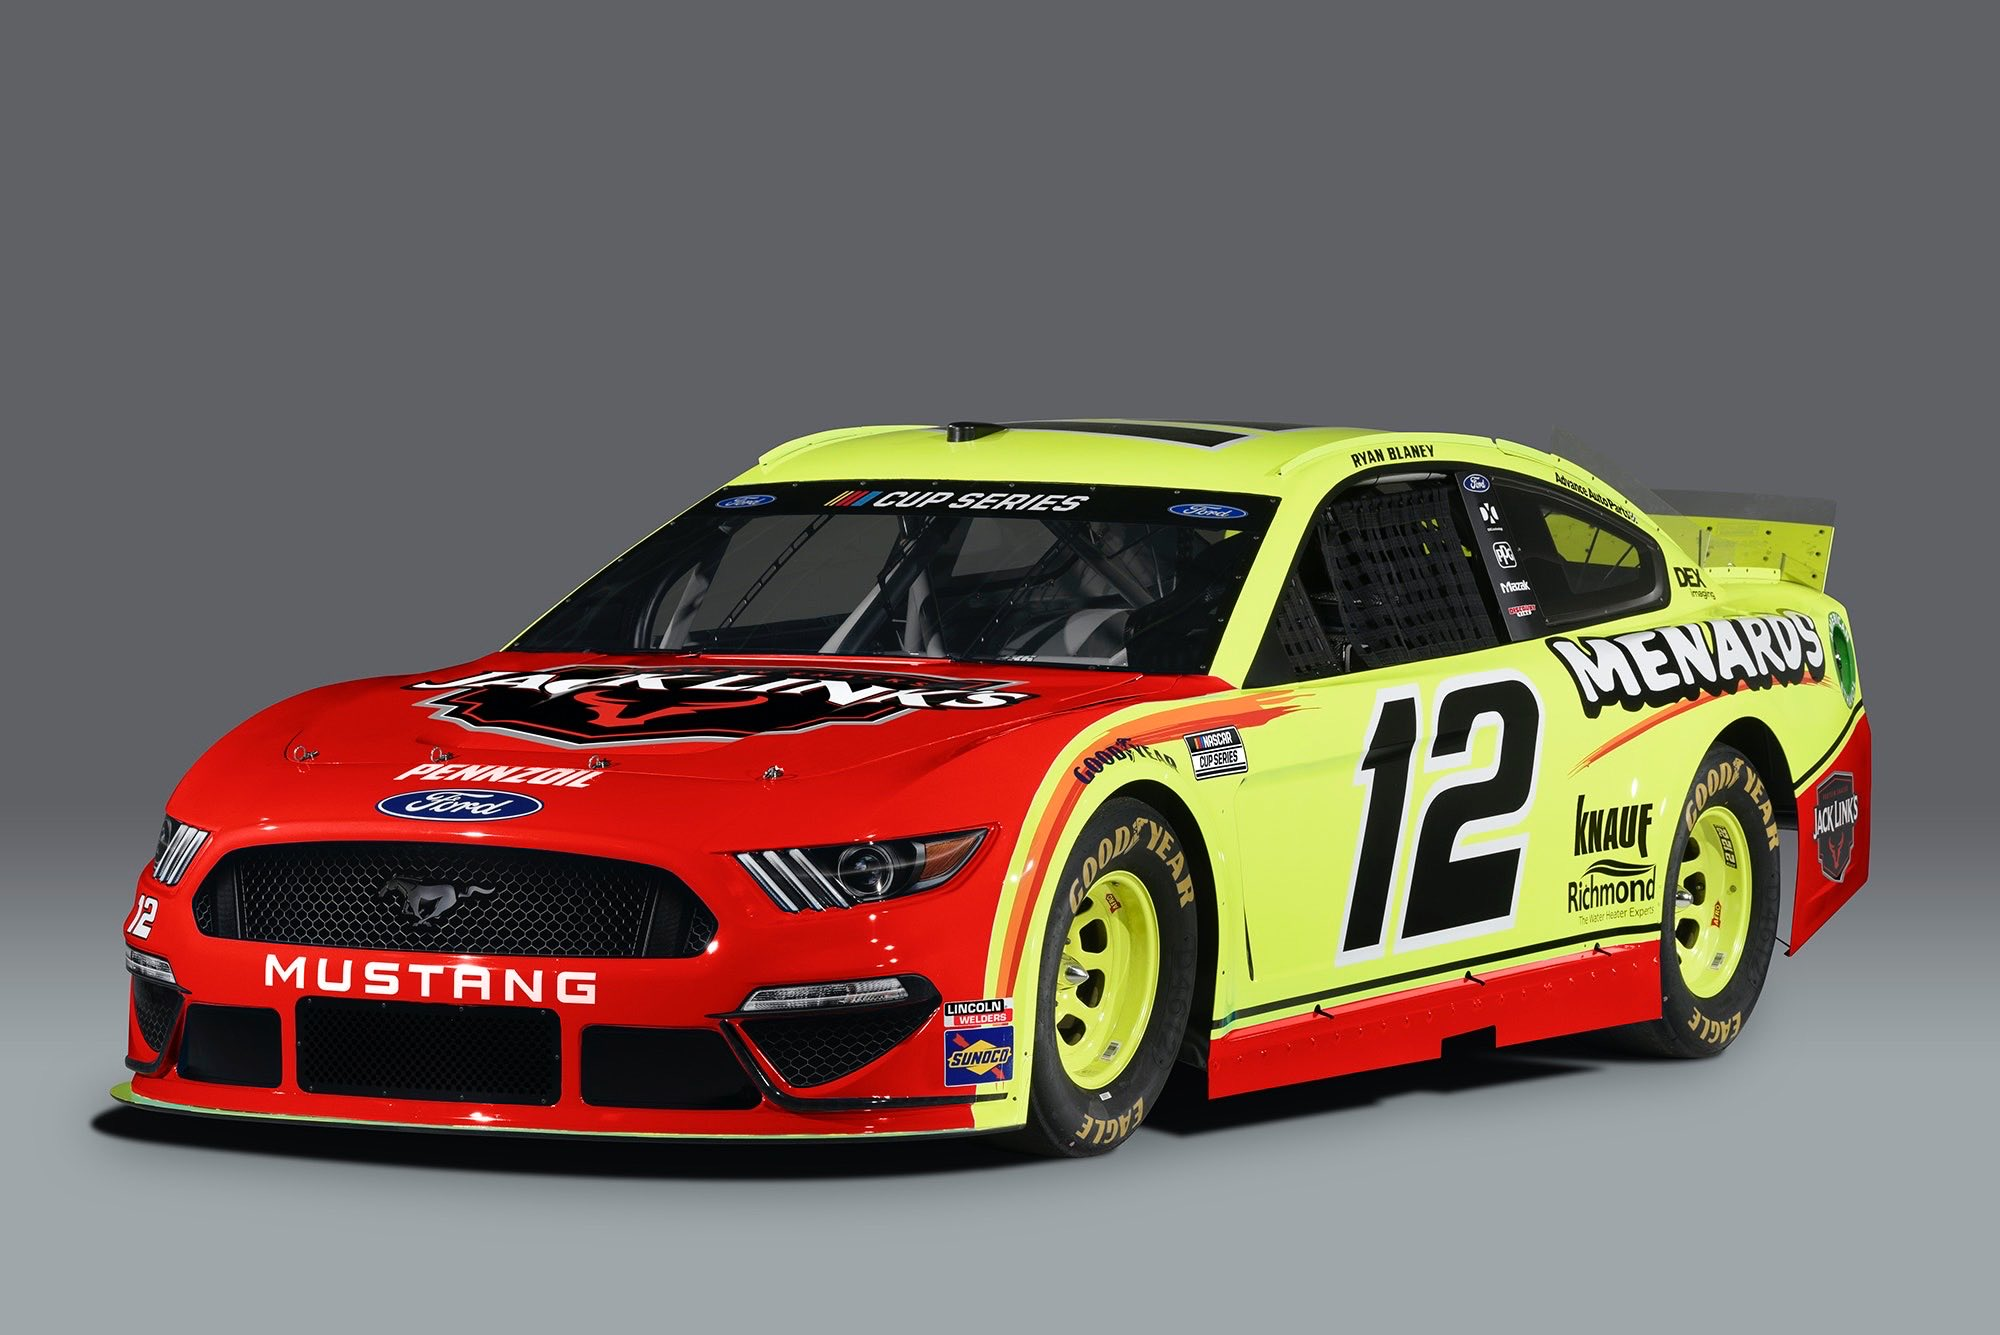 Ryan Blaney On Twitter Fueling Up For A Hot Race Tomorrow At Homesteadmiami With Jacklinks Go Grab Yourself A Bag Today Flag and anthem is giving away an autographed #12 captains hat + a $200 flag. ryan blaney on twitter fueling up for